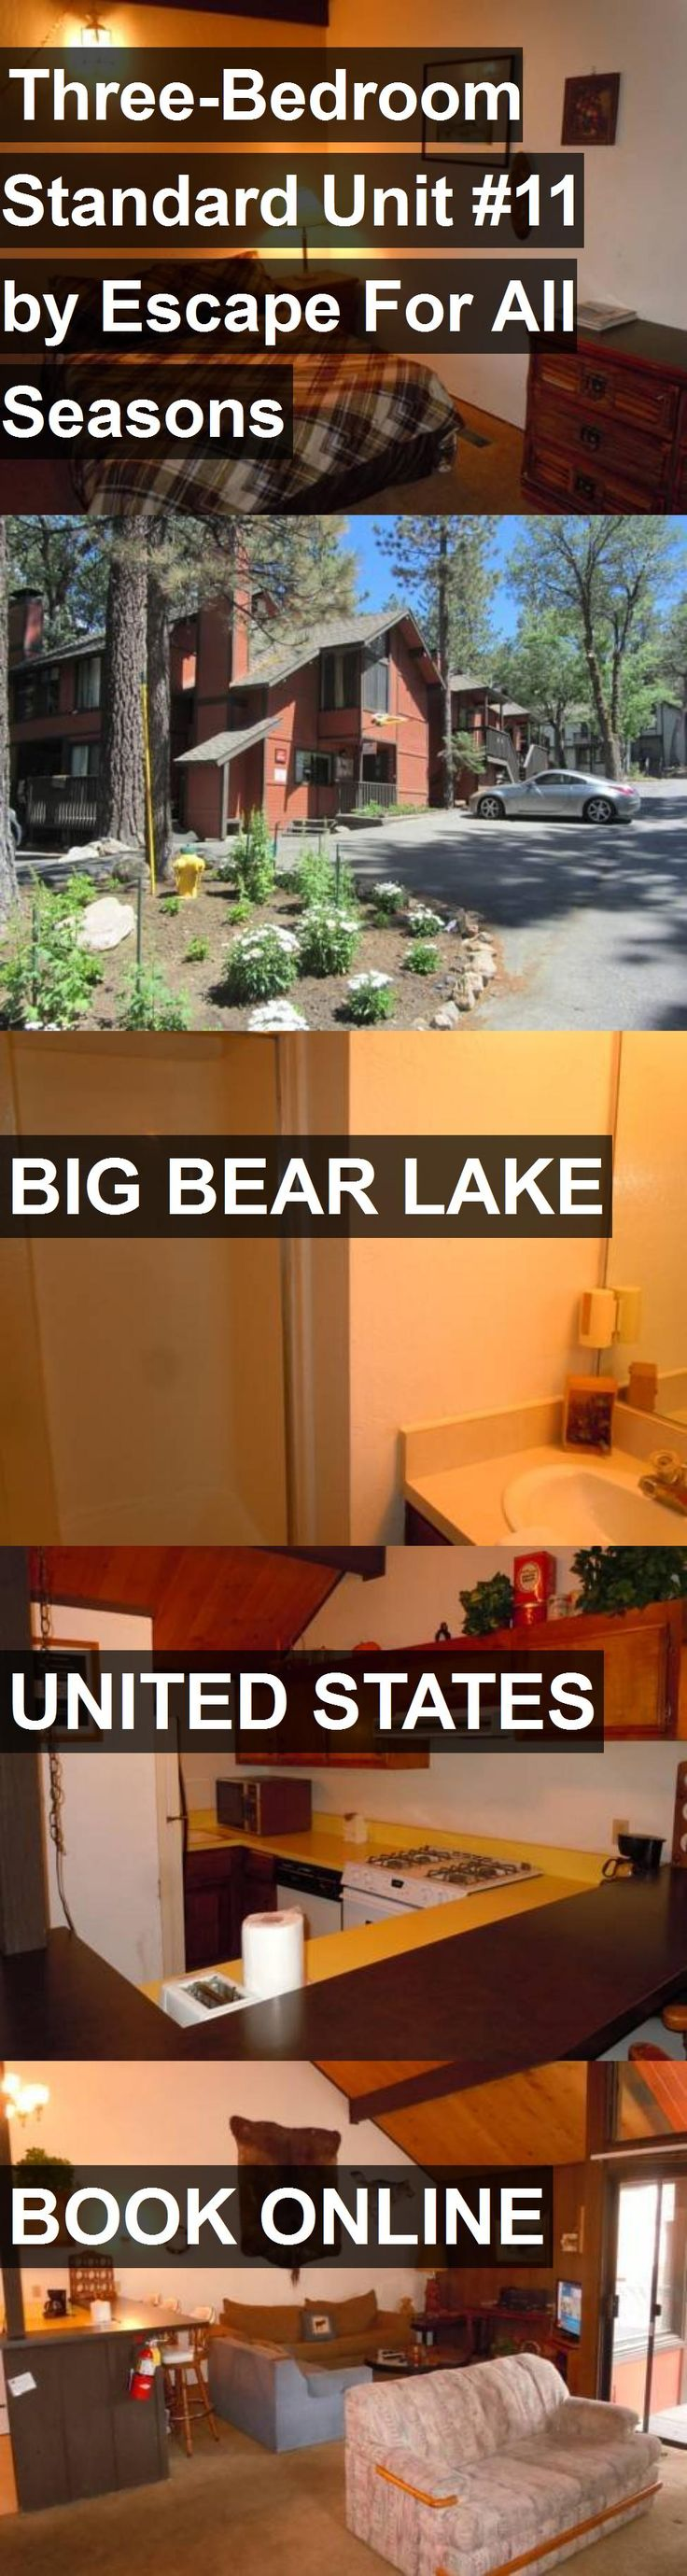 Hotel Three-Bedroom Standard Unit #11 by Escape For All Seasons in Big Bear Lake, United States. For more information, photos, reviews and best prices please follow the link. #UnitedStates #BigBearLake #travel #vacation #hotel